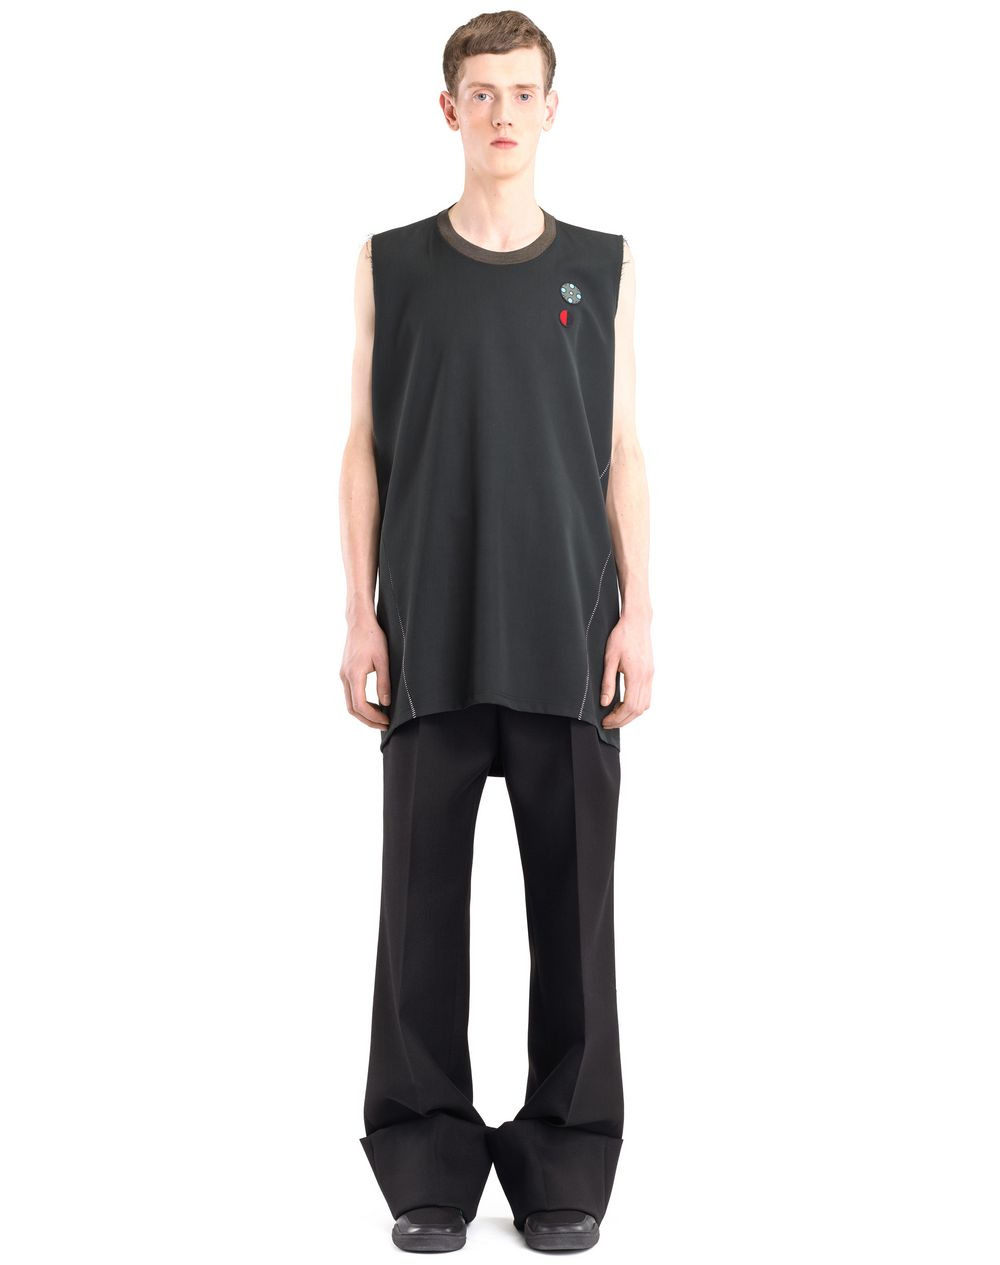 LONG T-SHIRT - Lanvin